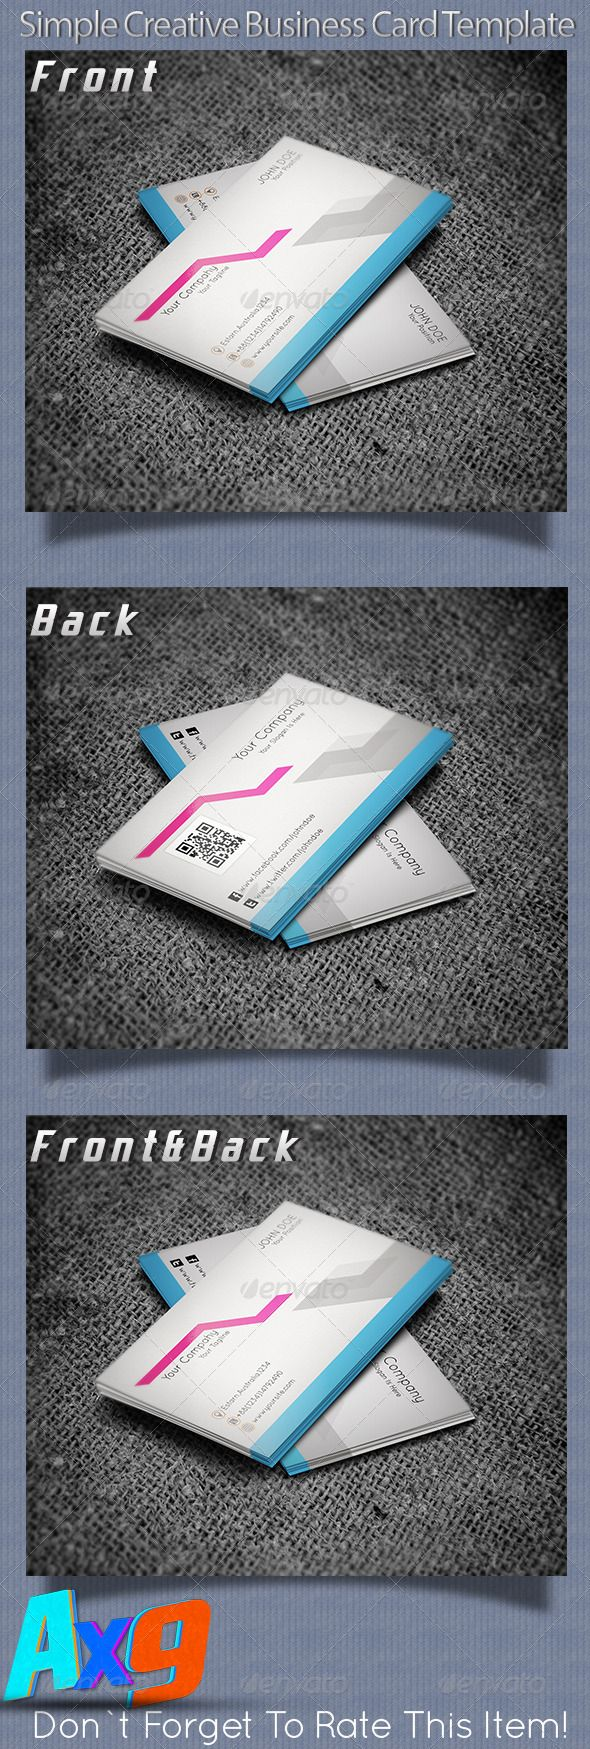 974 best Business Card Template Design images on Pinterest ...